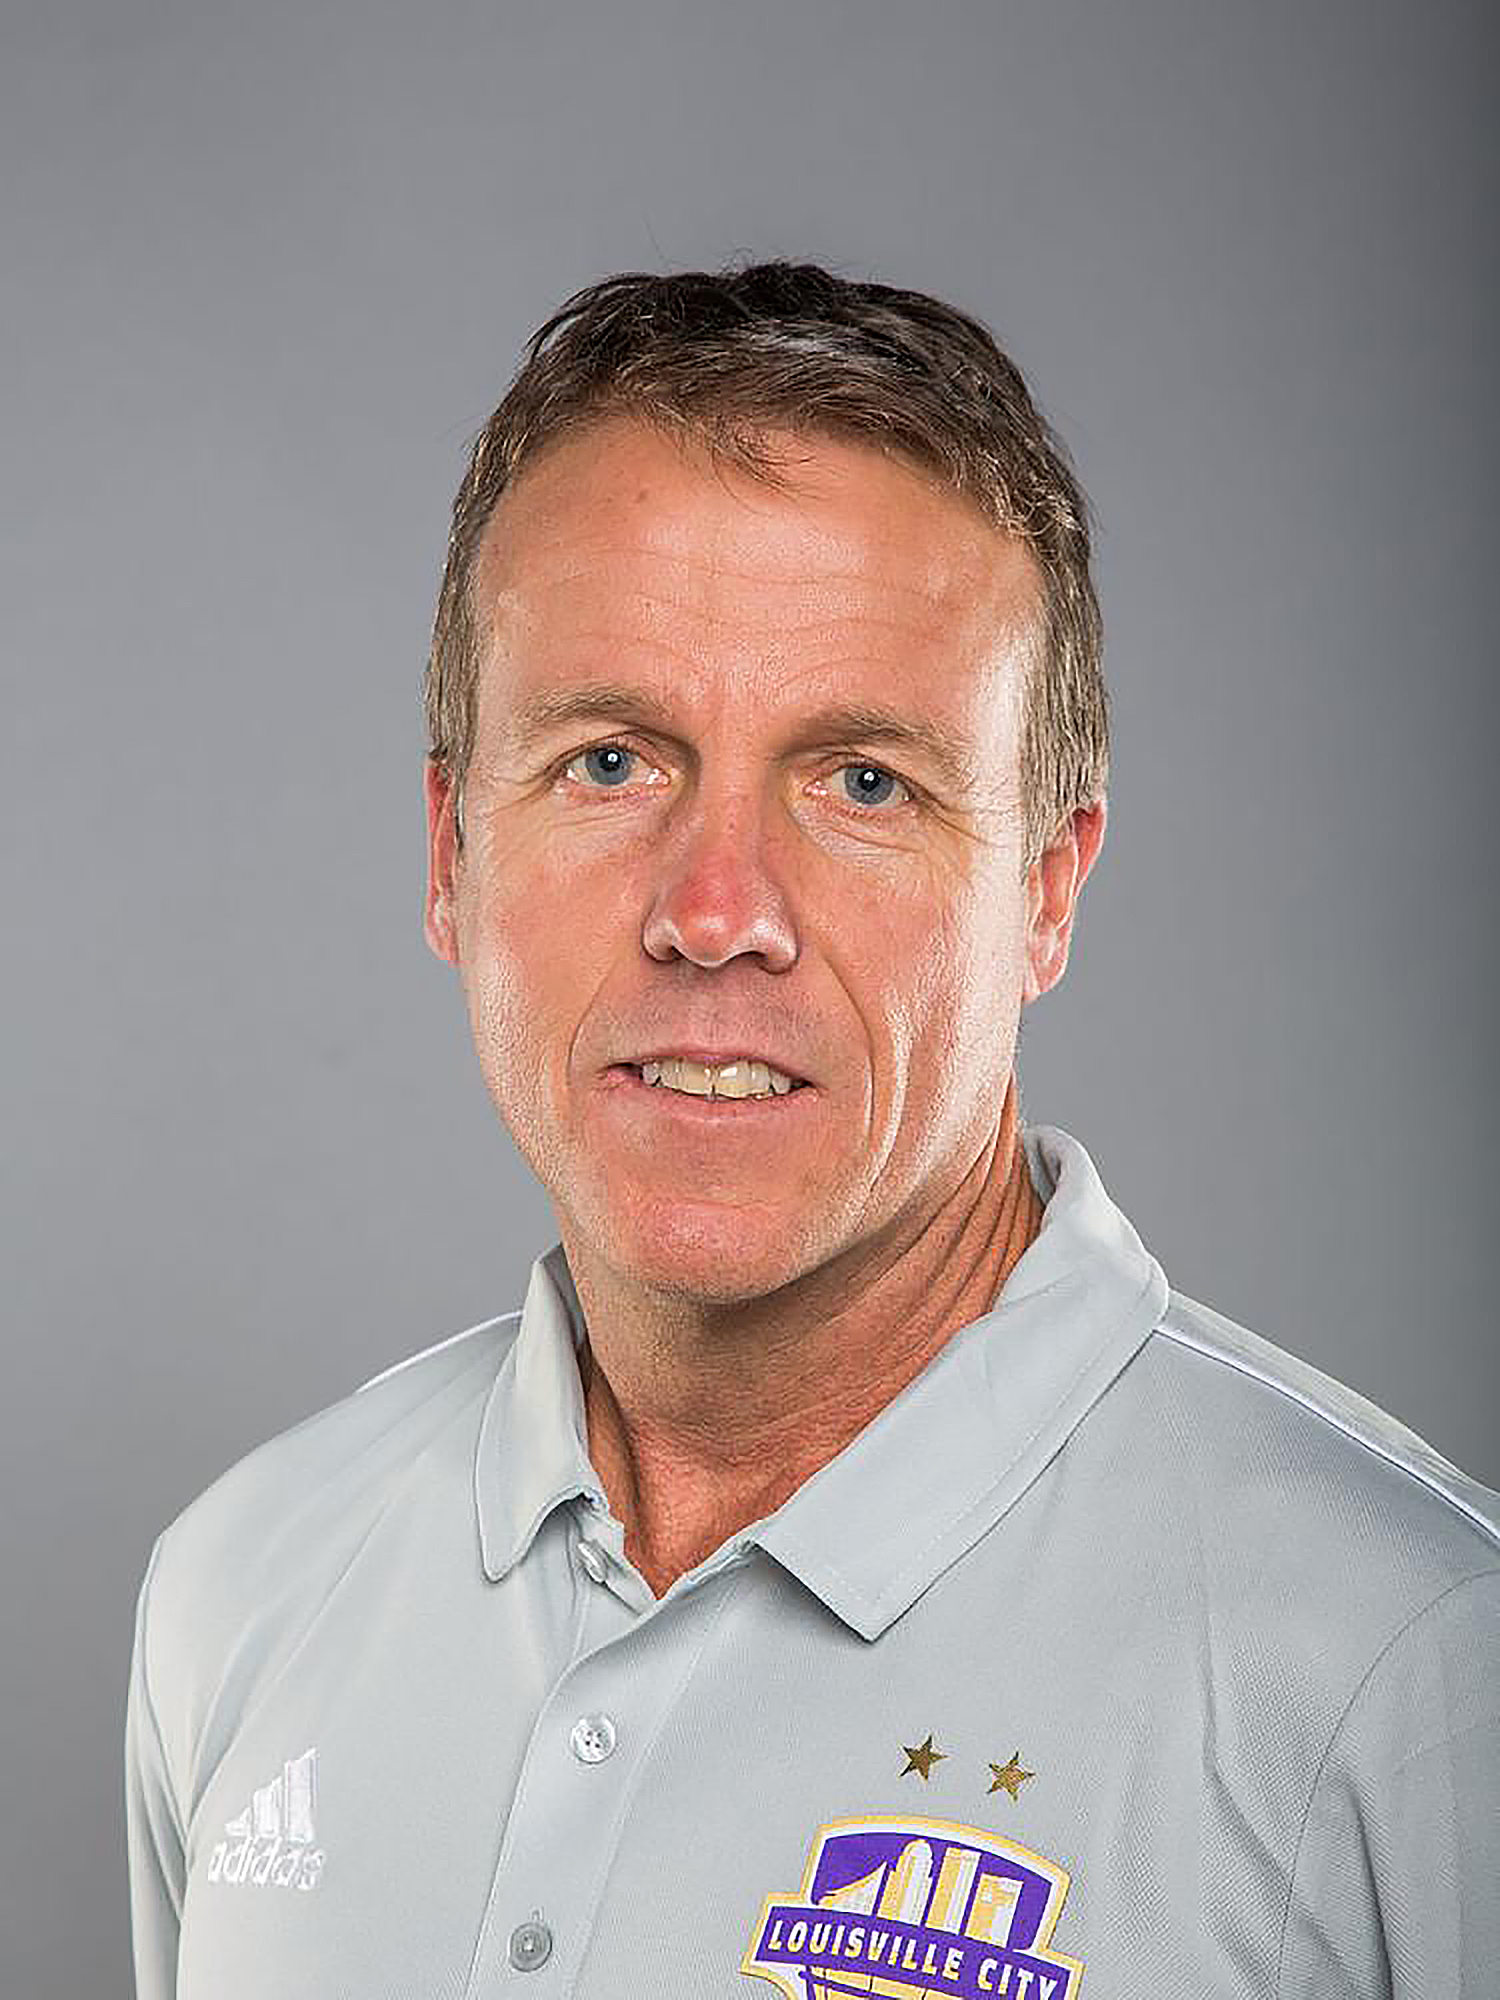 Louisville City FC Head Coach John Hackworth image